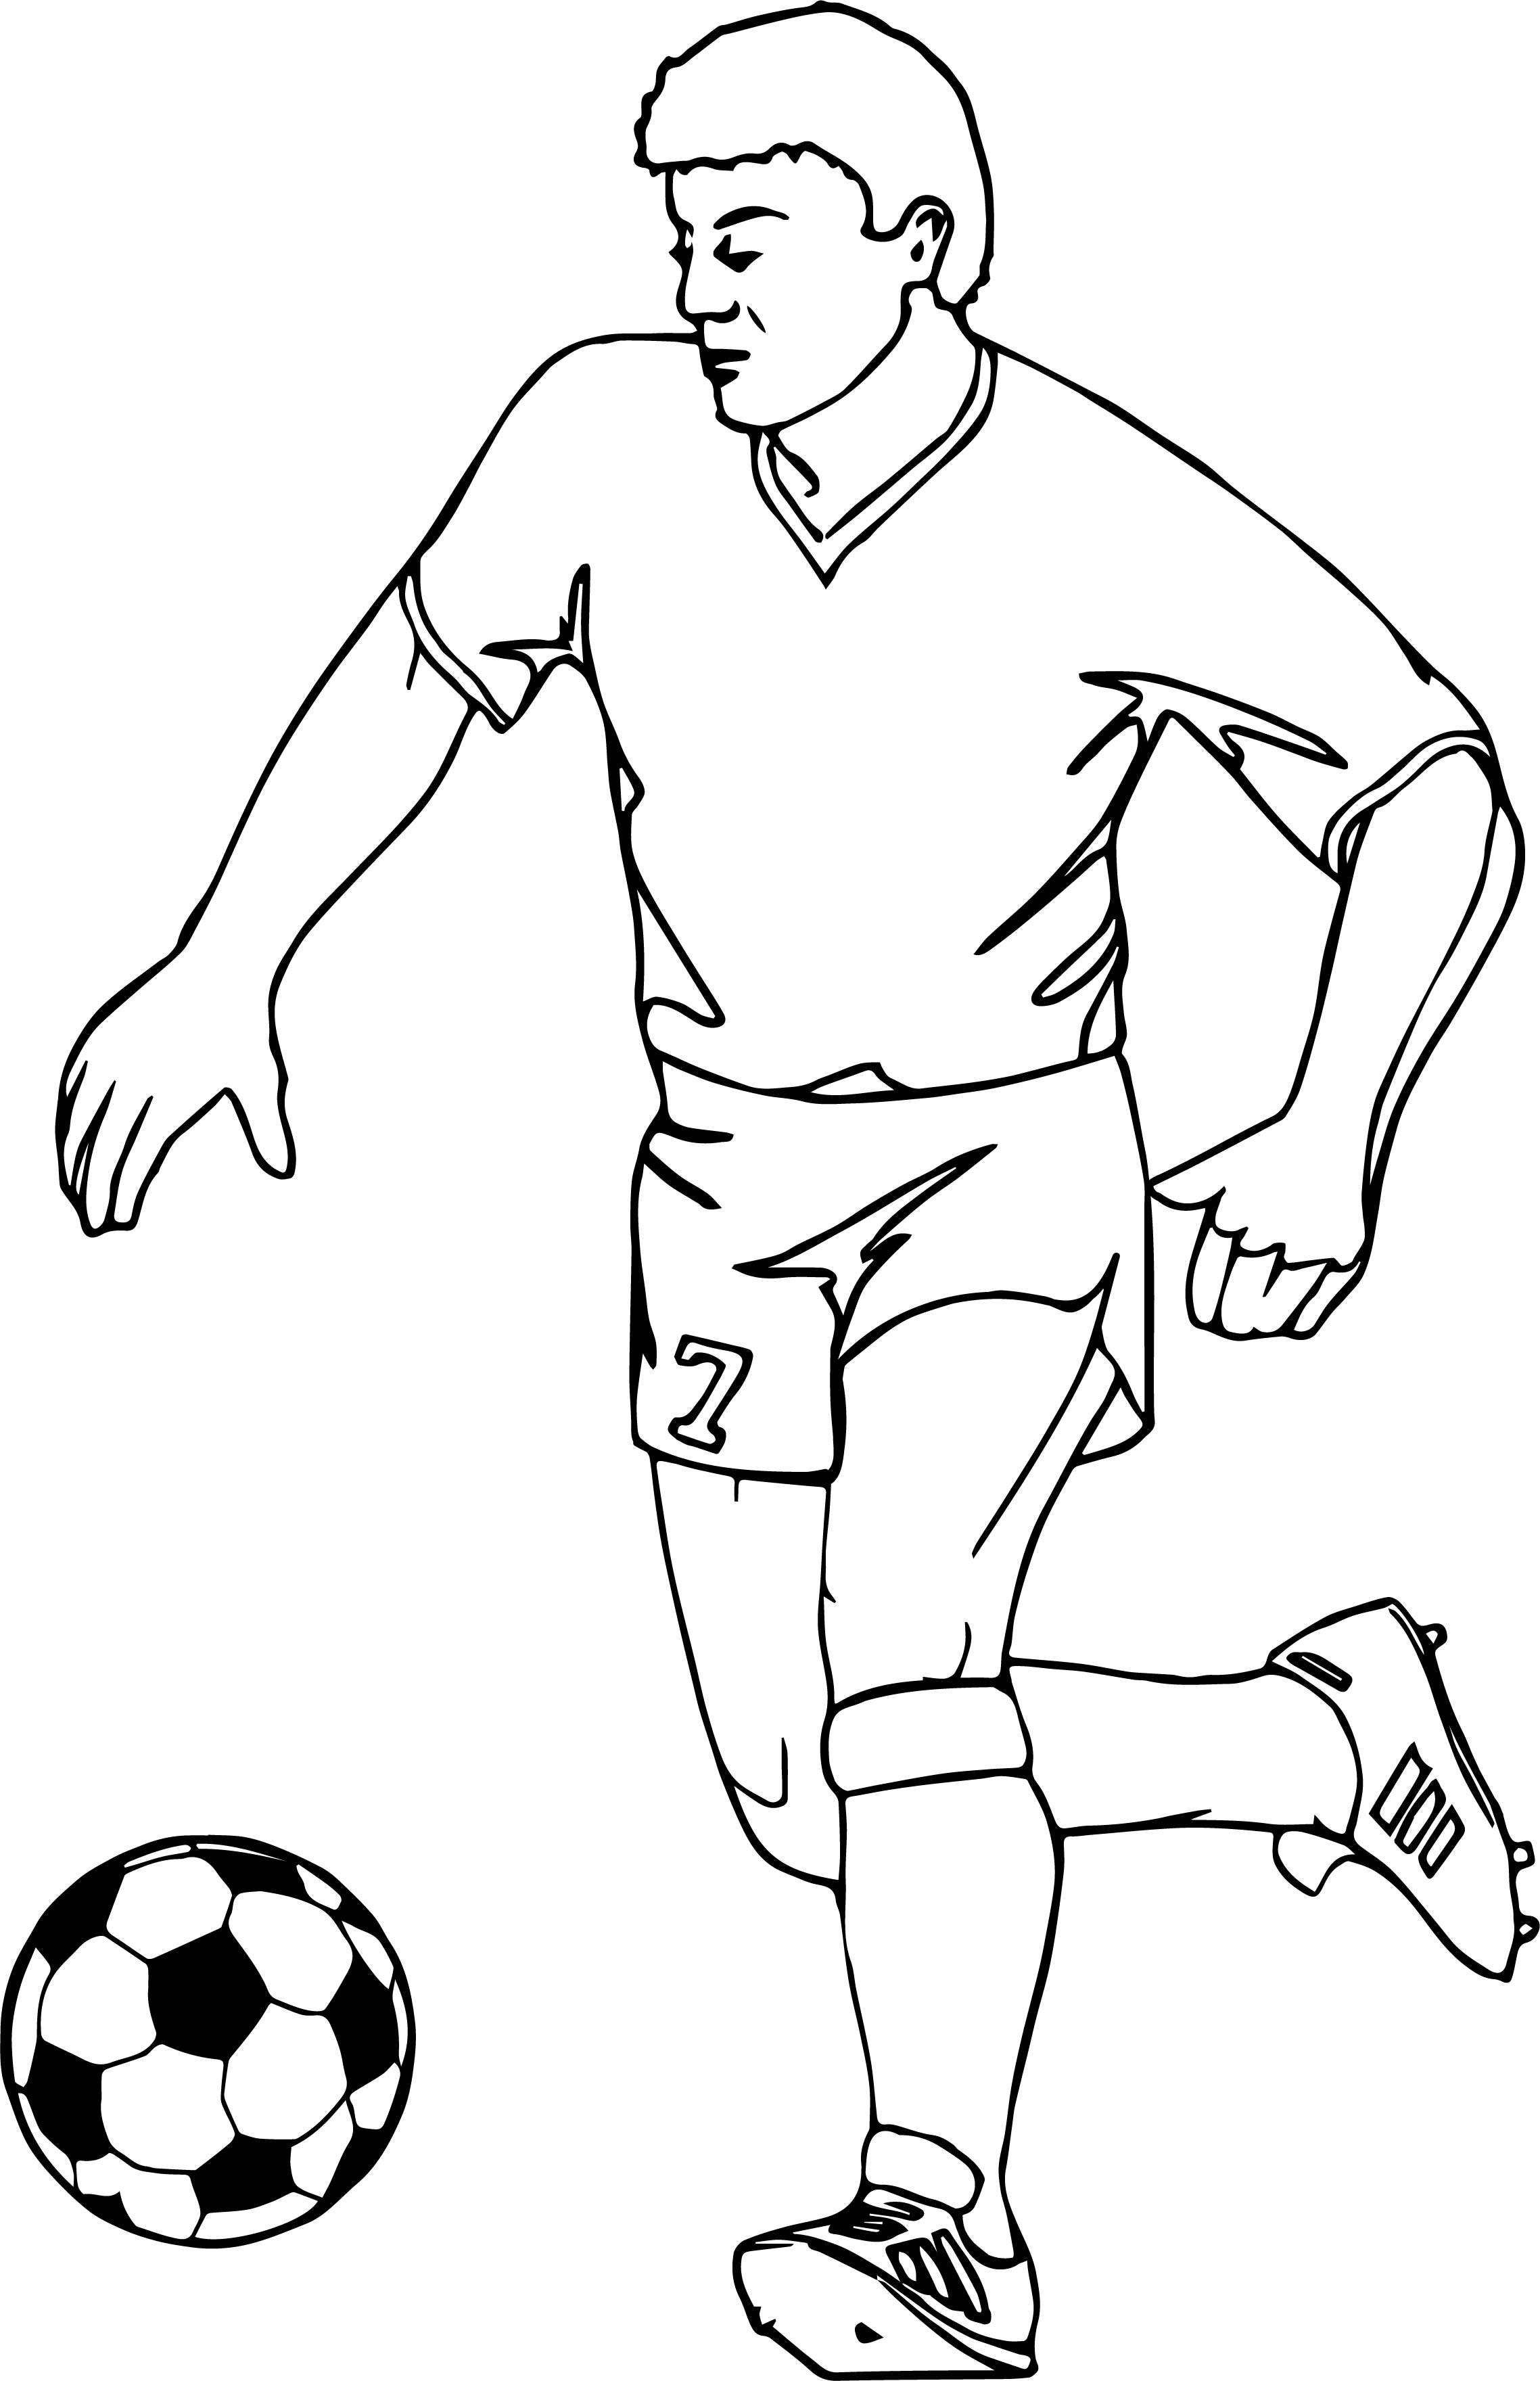 soccer player coloring pages - running football player playing soccer coloring page